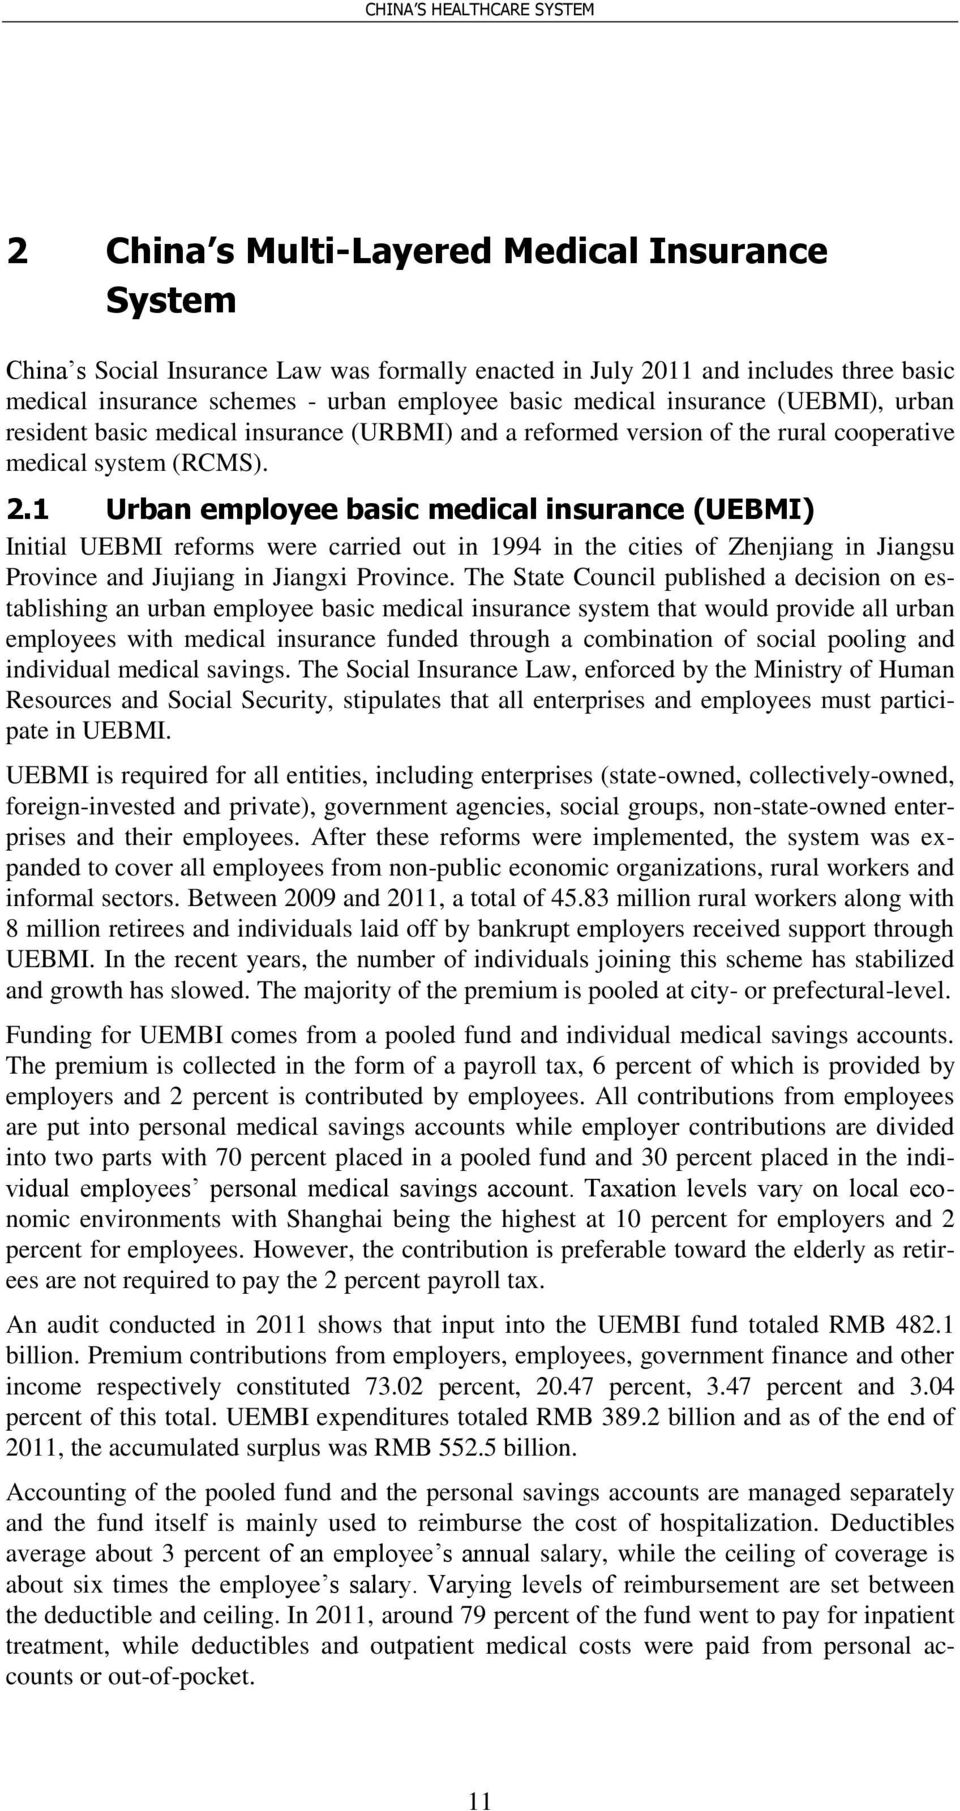 1 Urban employee basic medical insurance (UEBMI) Initial UEBMI reforms were carried out in 1994 in the cities of Zhenjiang in Jiangsu Province and Jiujiang in Jiangxi Province.